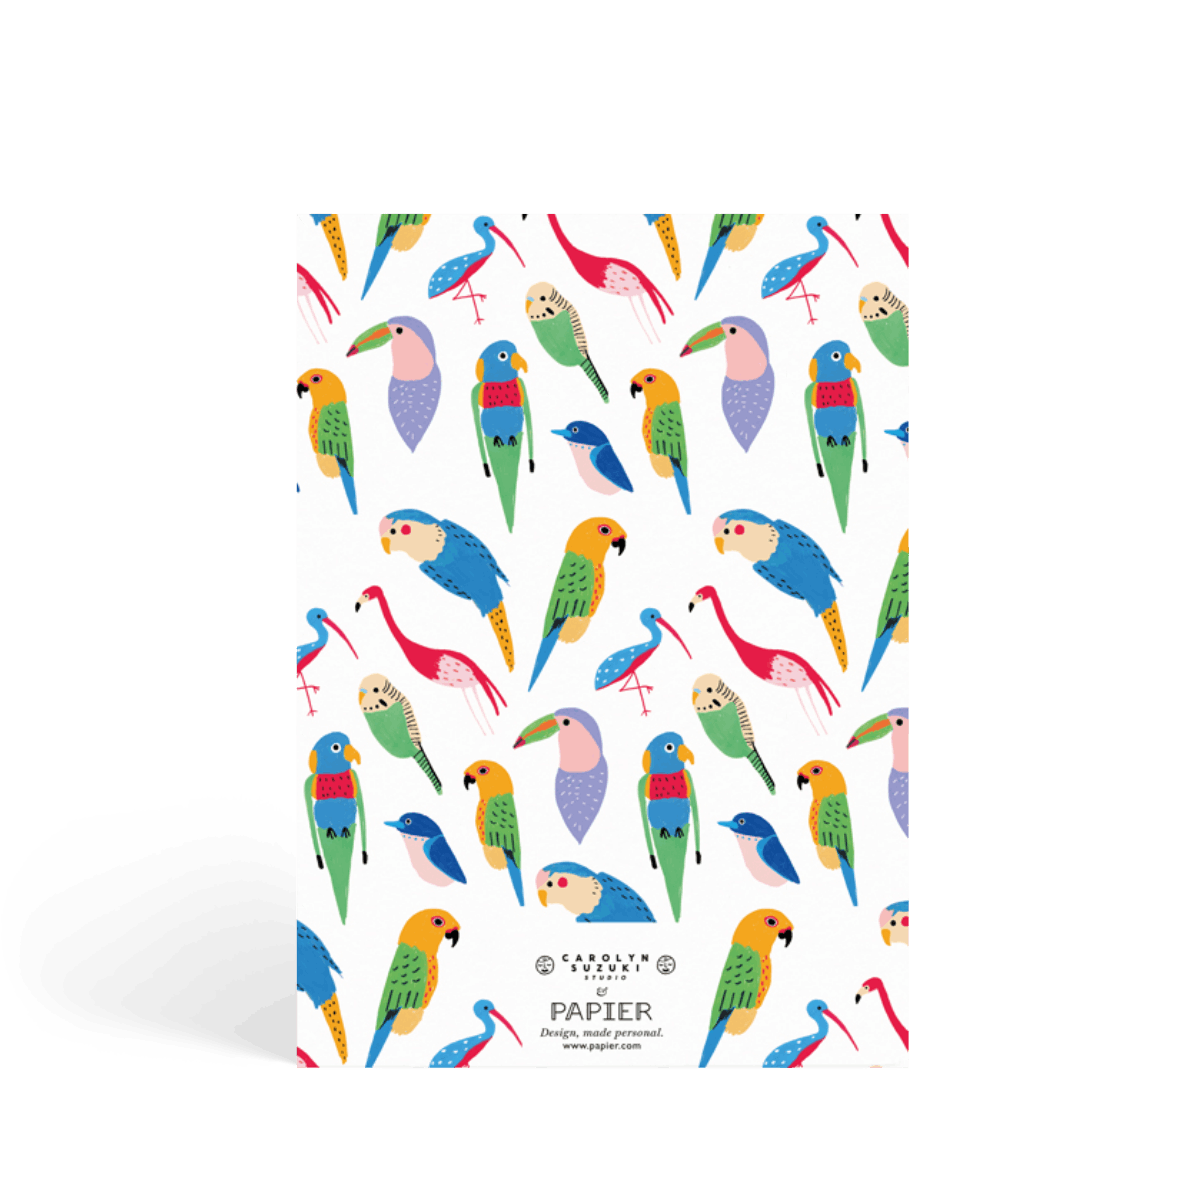 Https%3a%2f%2fwww.papier.com%2fproduct image%2f56756%2f5%2ftropical birds 13627 back 1542370101.png?ixlib=rb 1.1